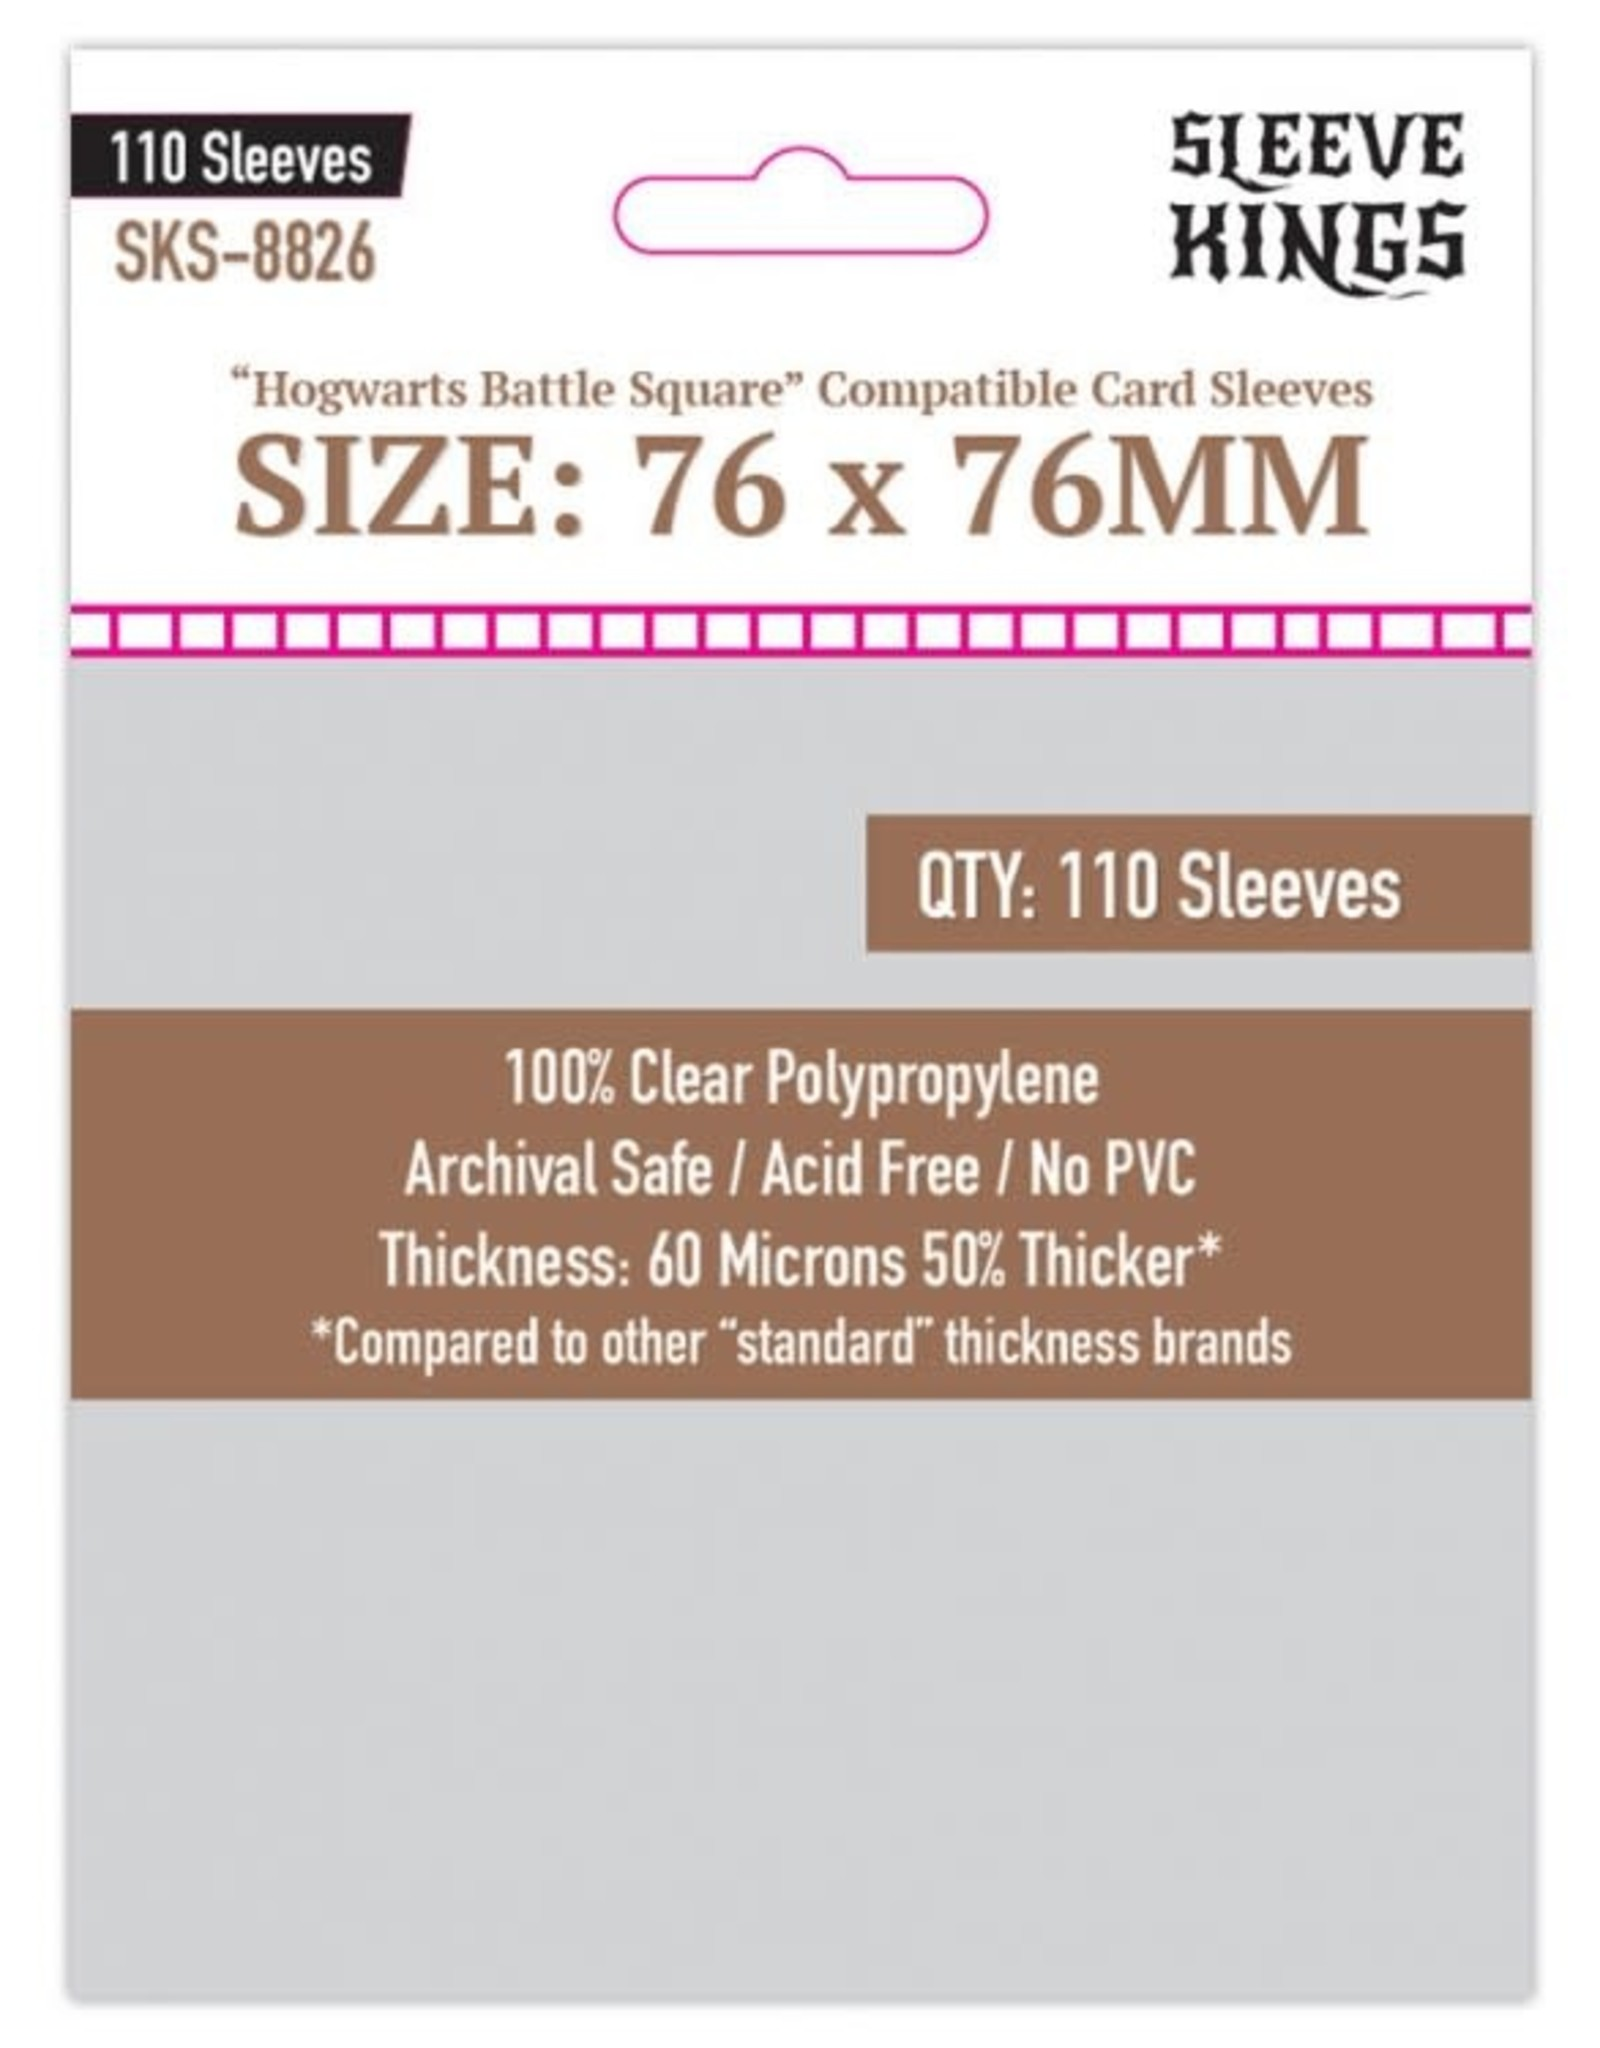 Sleeve Kings Sleeves: Hogwarts Battle Square Compatible Sleeves 60 Microns 76mm x 76mm (110)